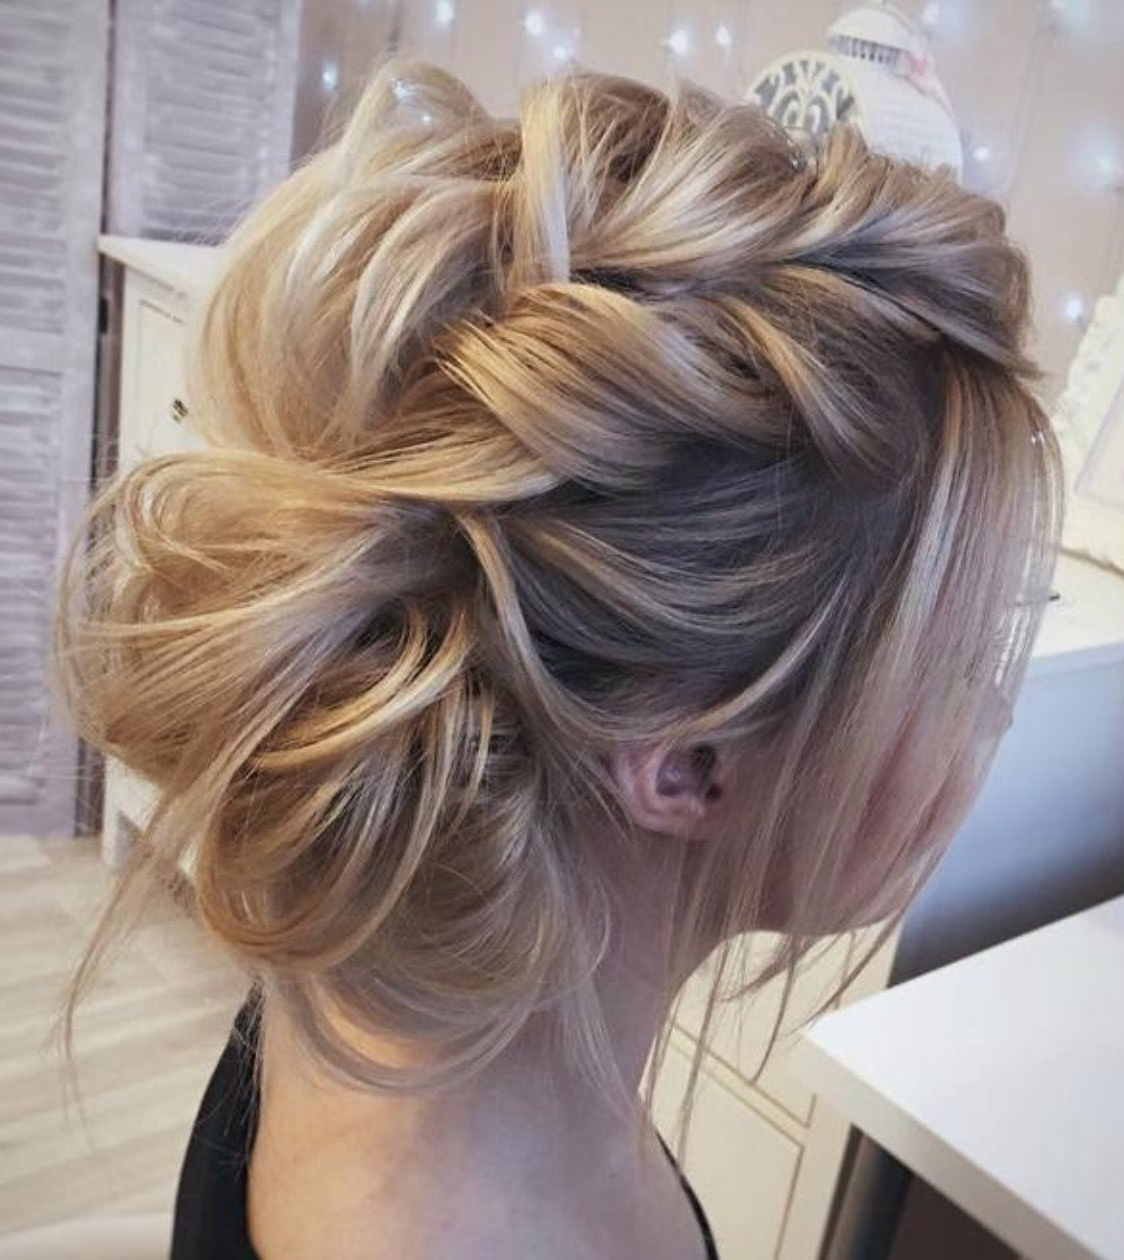 13+ Staggering Girls Hairstyles For Prom Ideas (View 3 of 20)